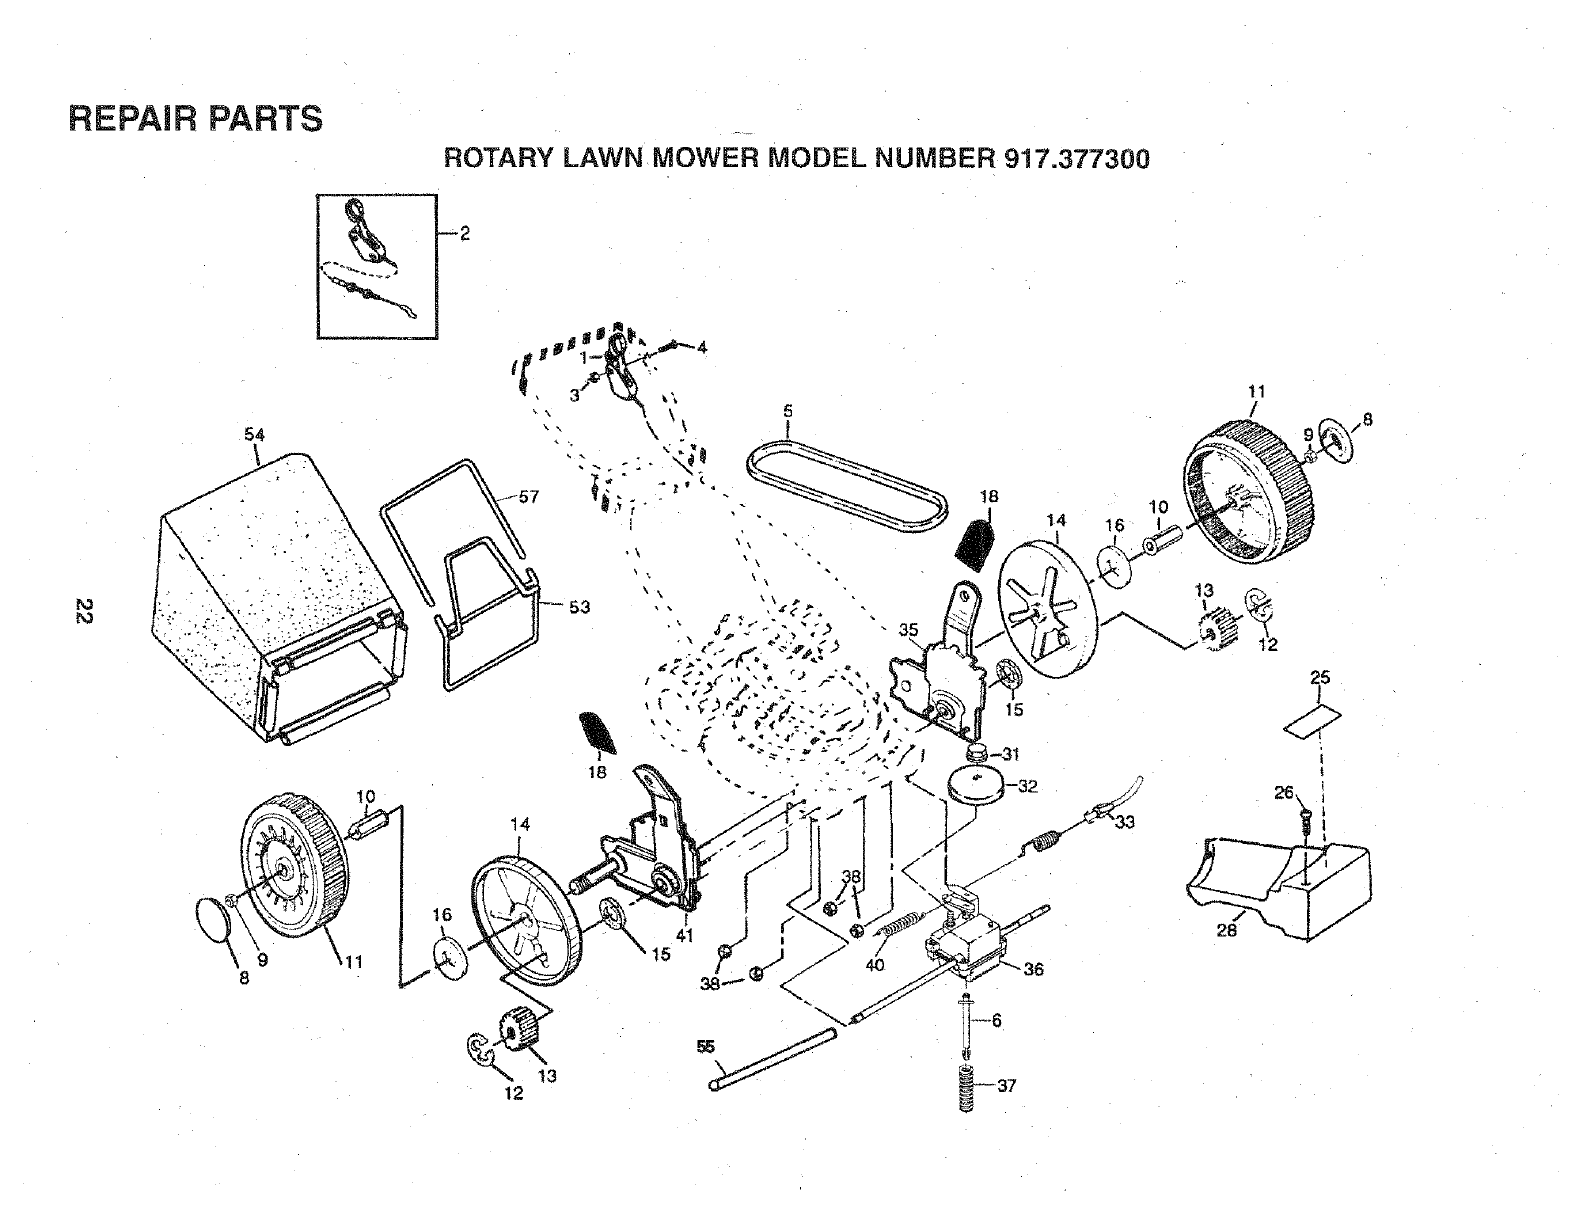 Page 22 of Craftsman Lawn Mower 917.3773 User Guide